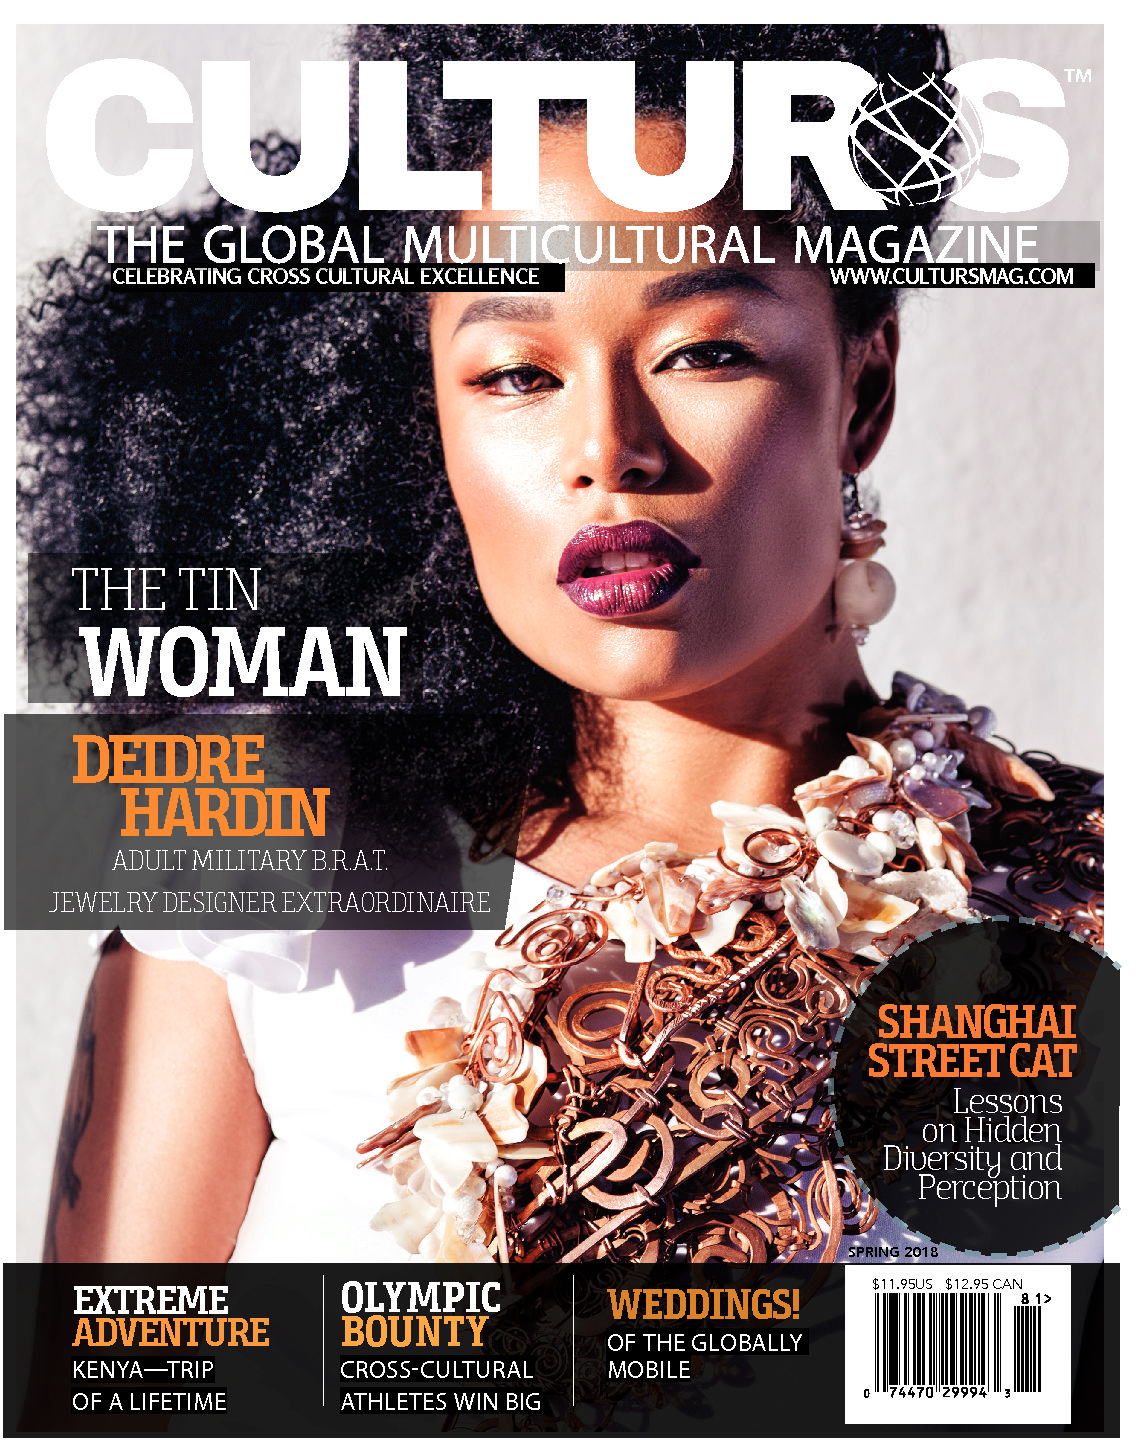 SUBSCRIBE to Culturs' PRINT Edition Today!